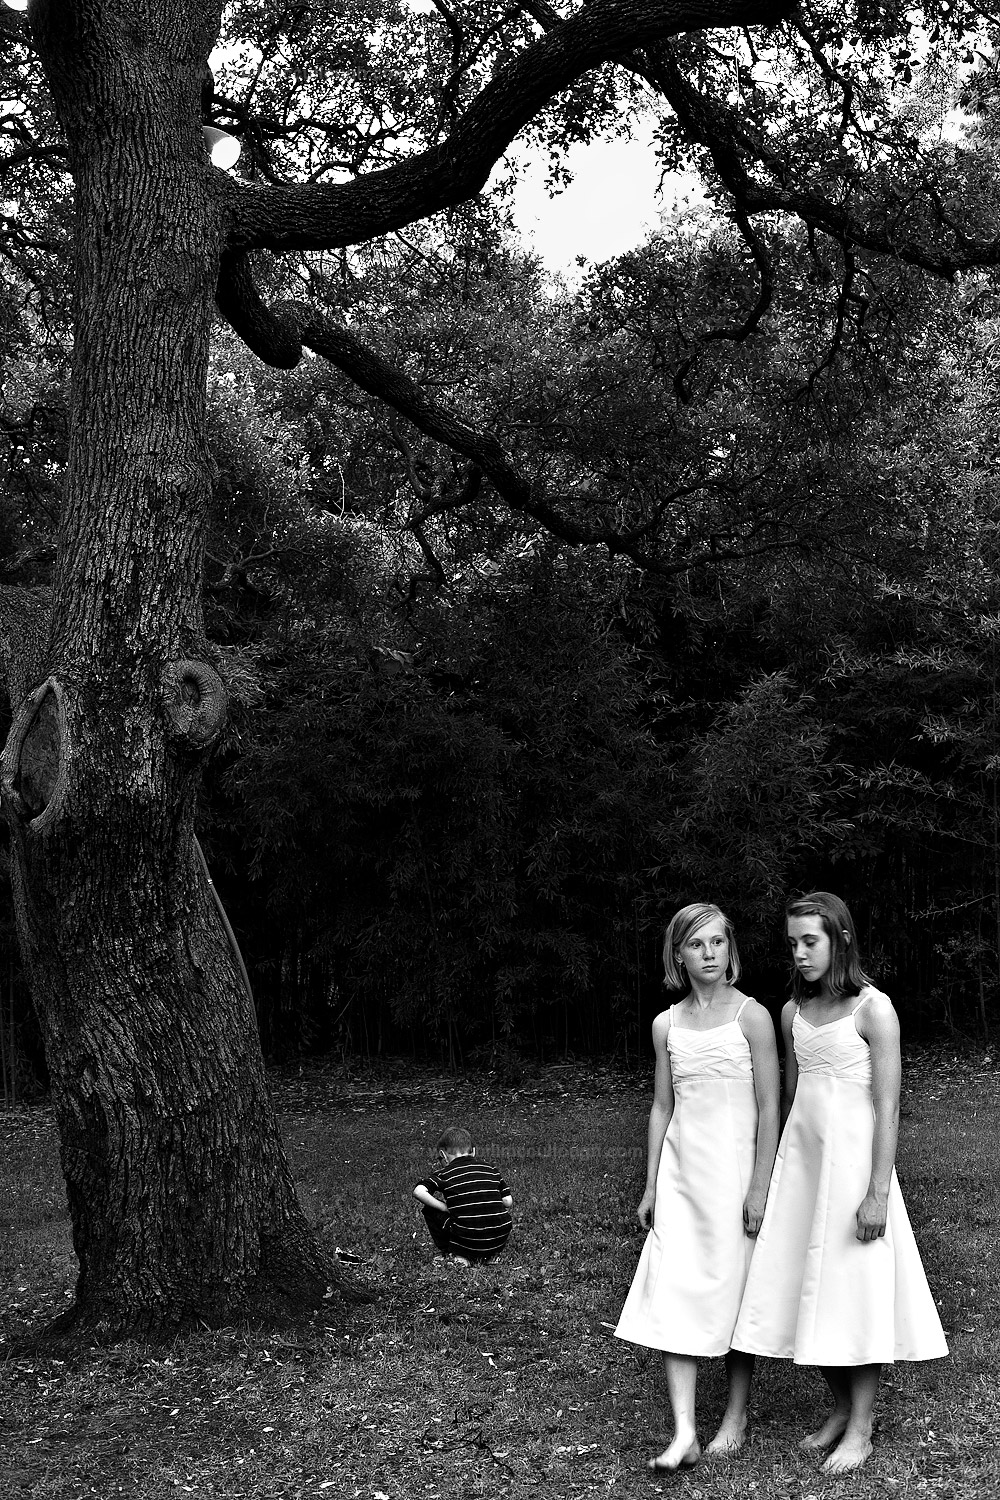 Girls and Tree